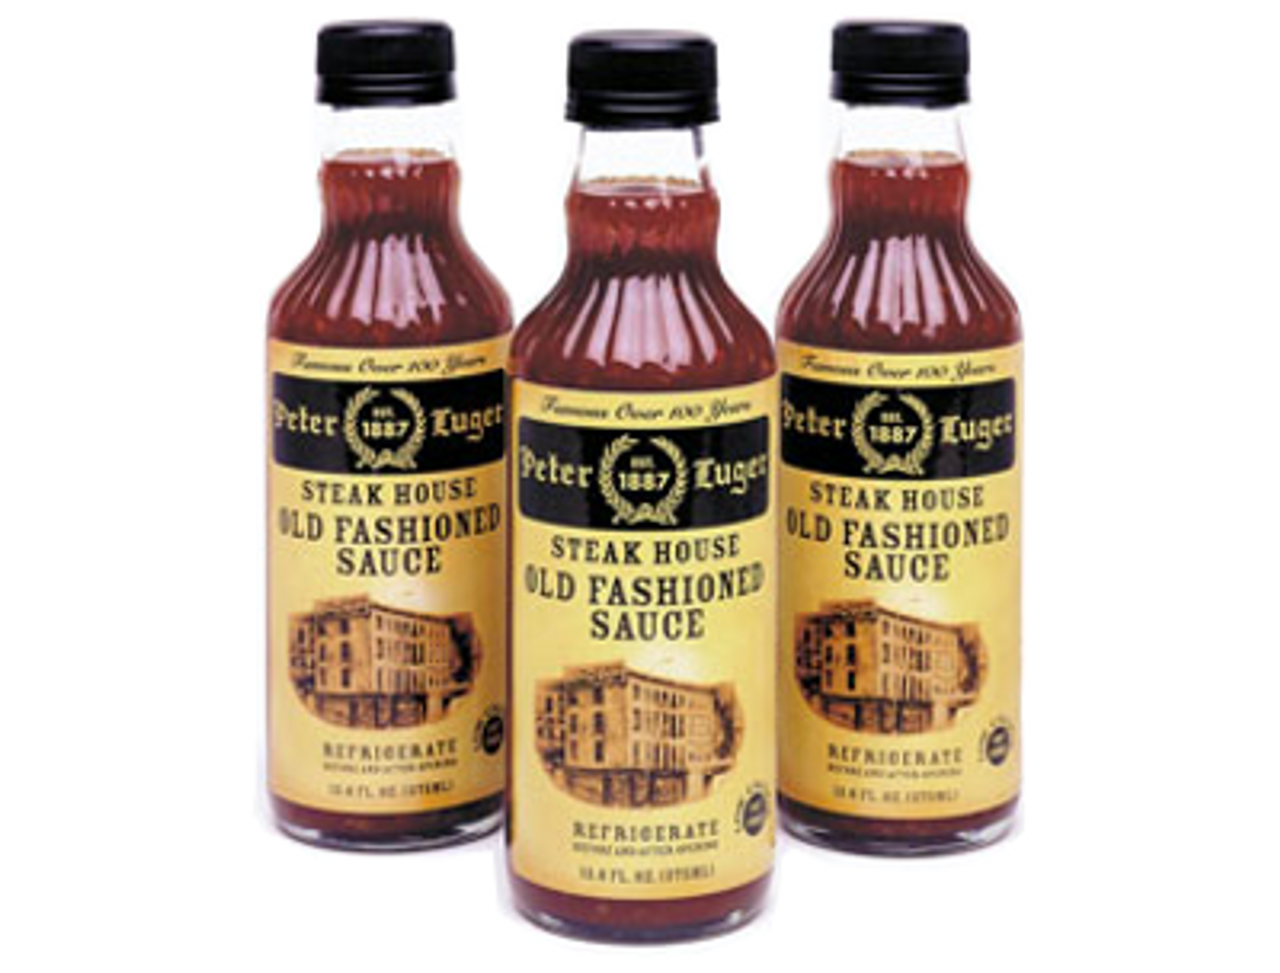 Peter Luger Old Fashioned Steak House Sauce